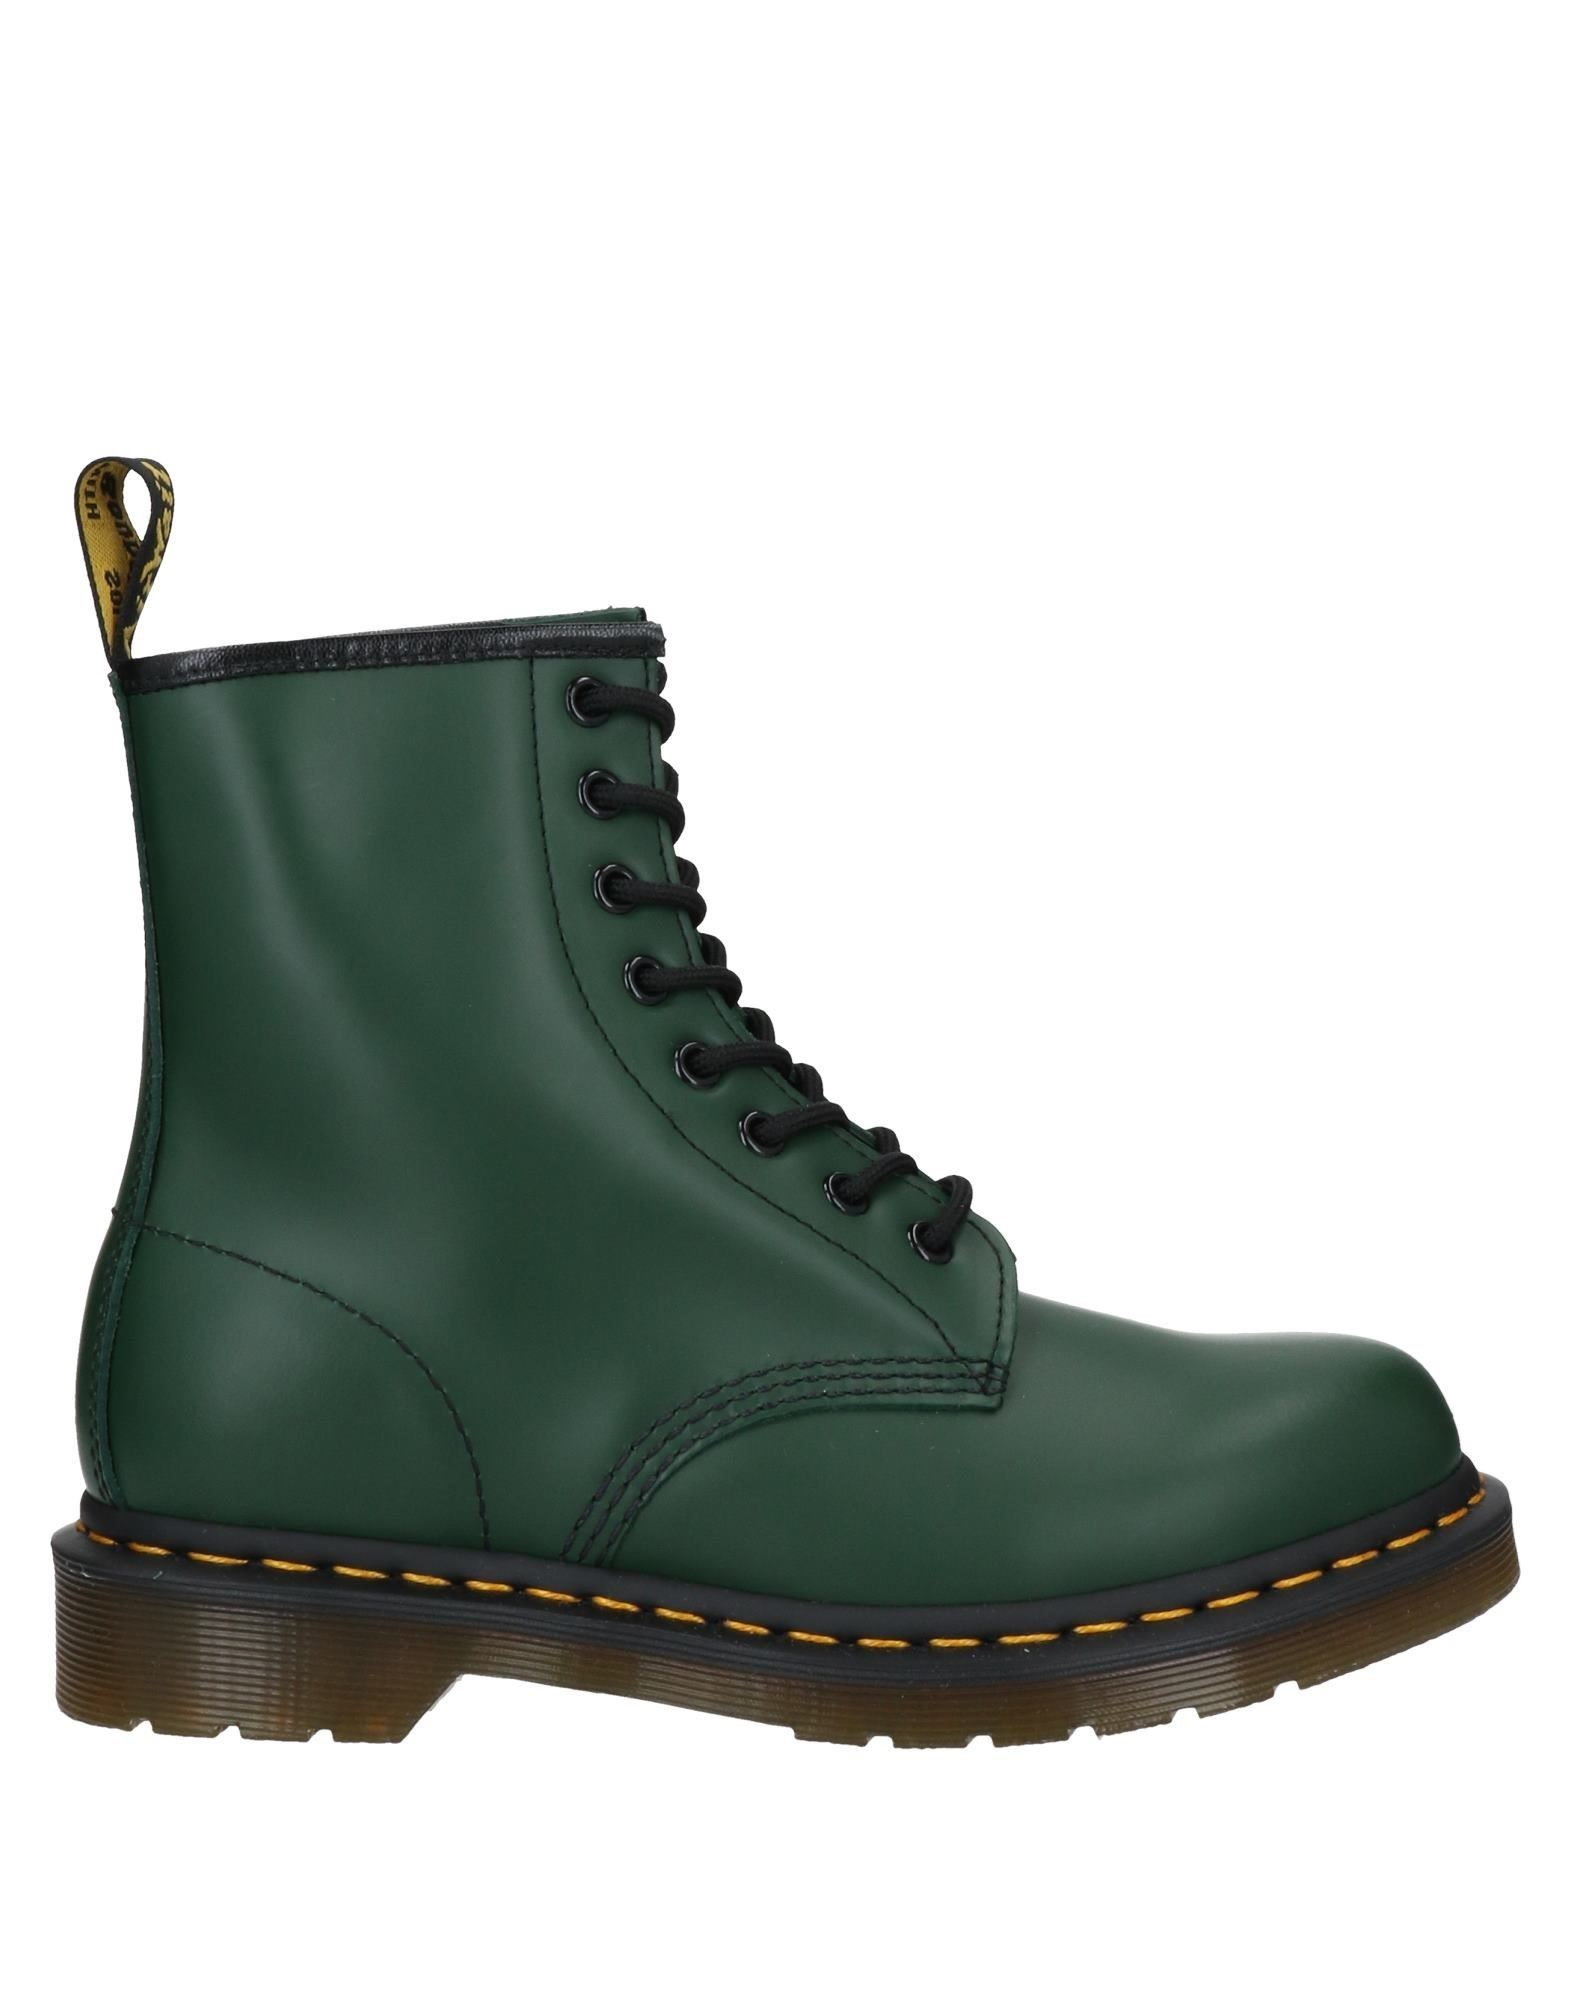 Dr. Martens Ankle Boots In Green